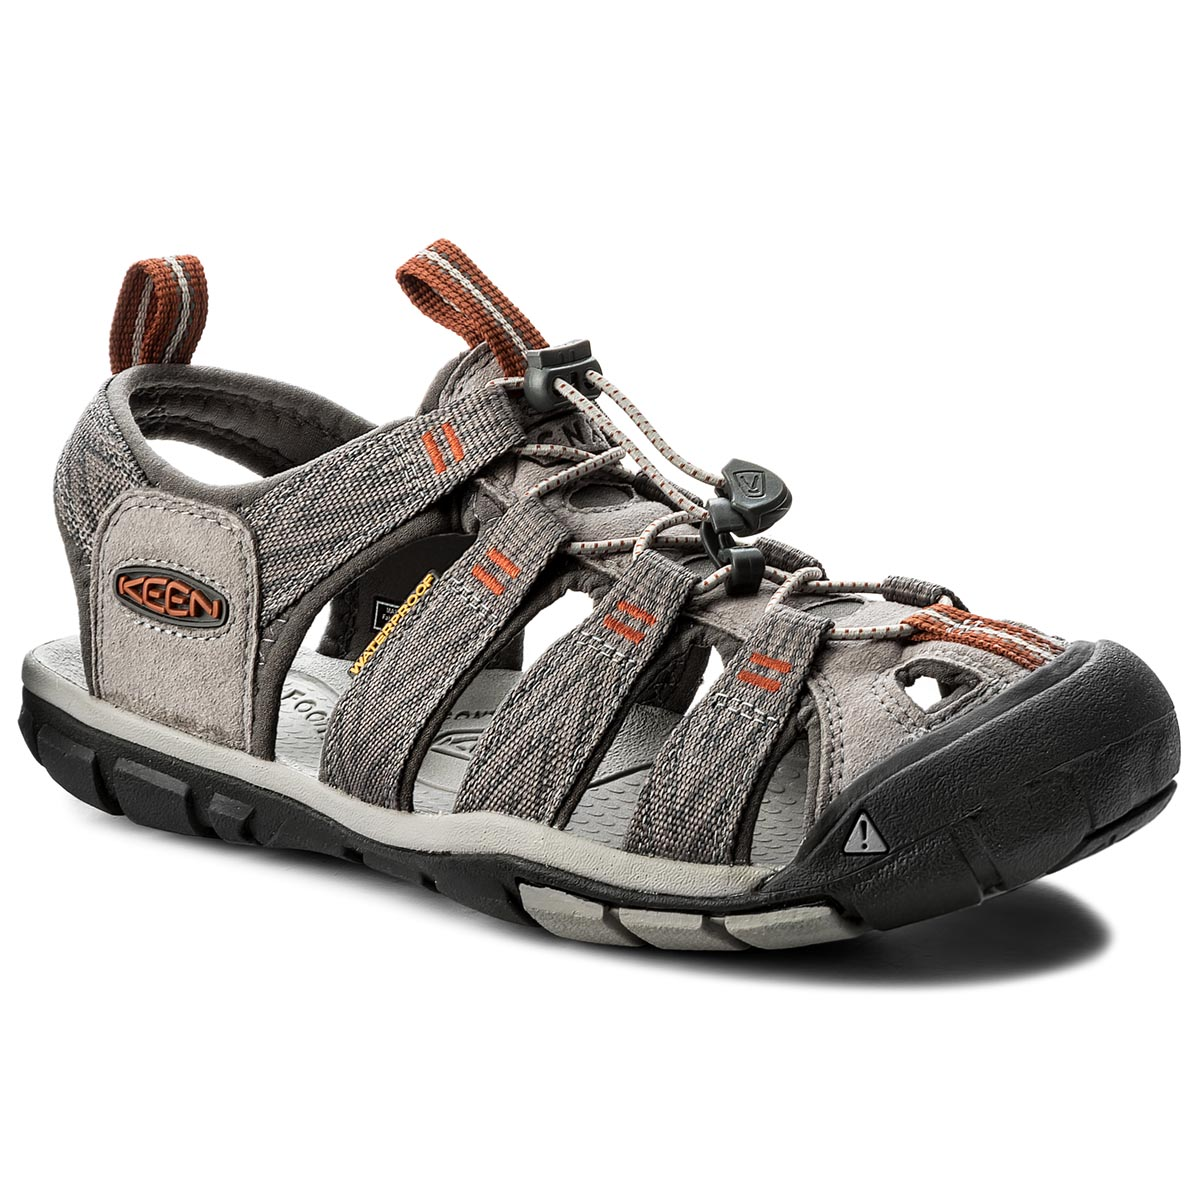 Sandale KEEN - Clearwater Cnx 1018497 Grey Flannel/Potters Clay